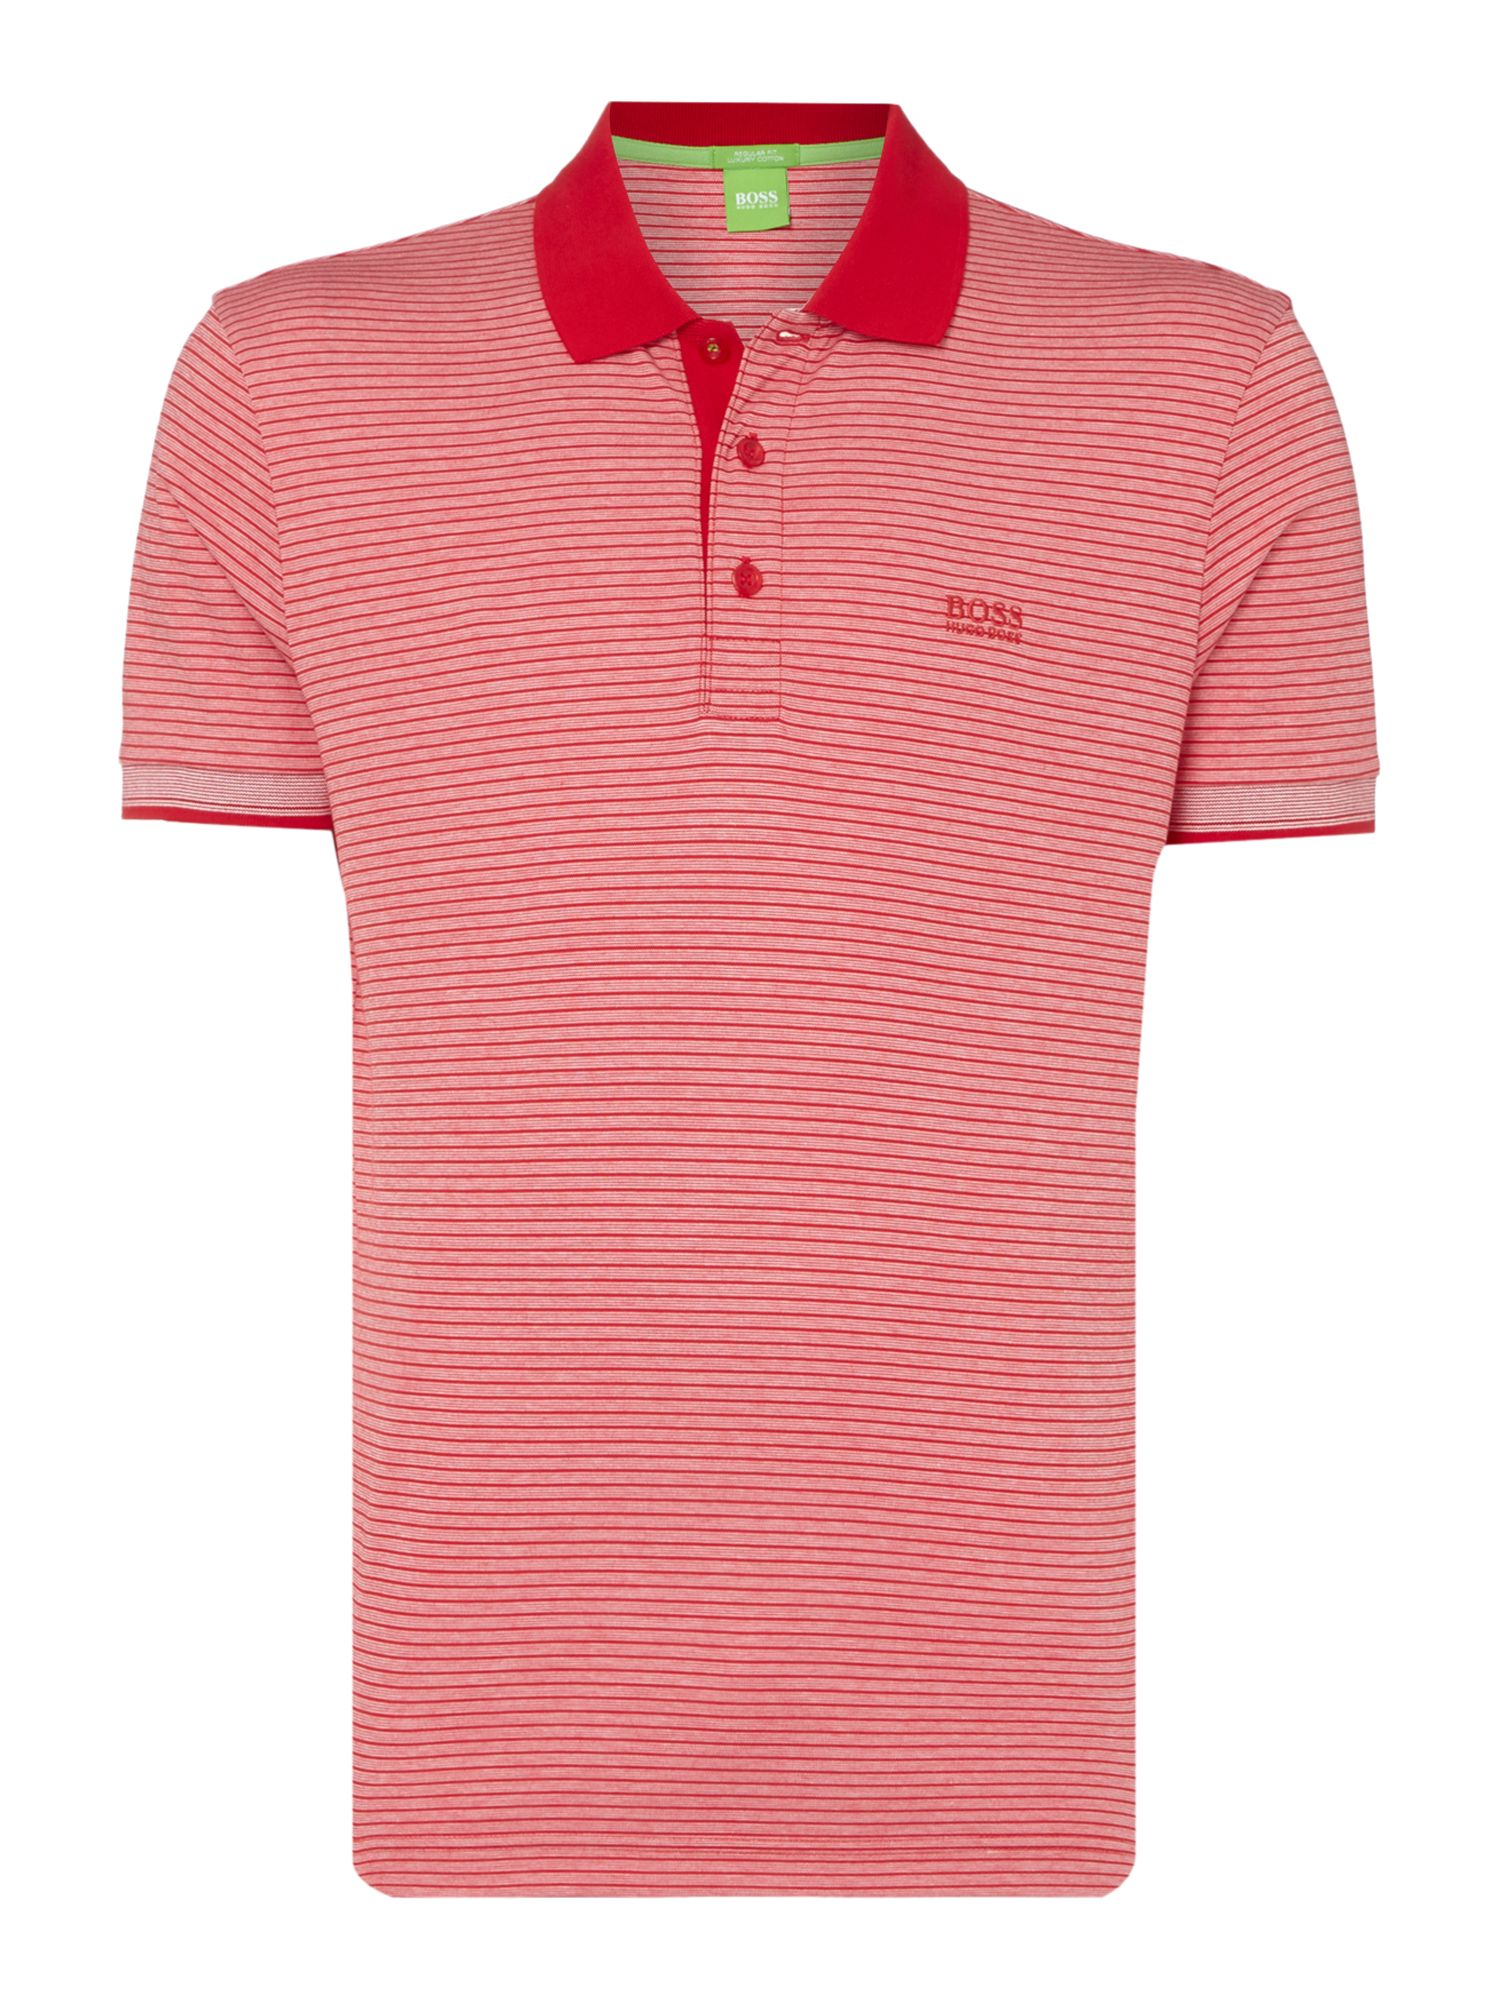 Men's Hugo Boss Paddos Stripe Short Sleeve Regular Fit Polo Shirt, Red